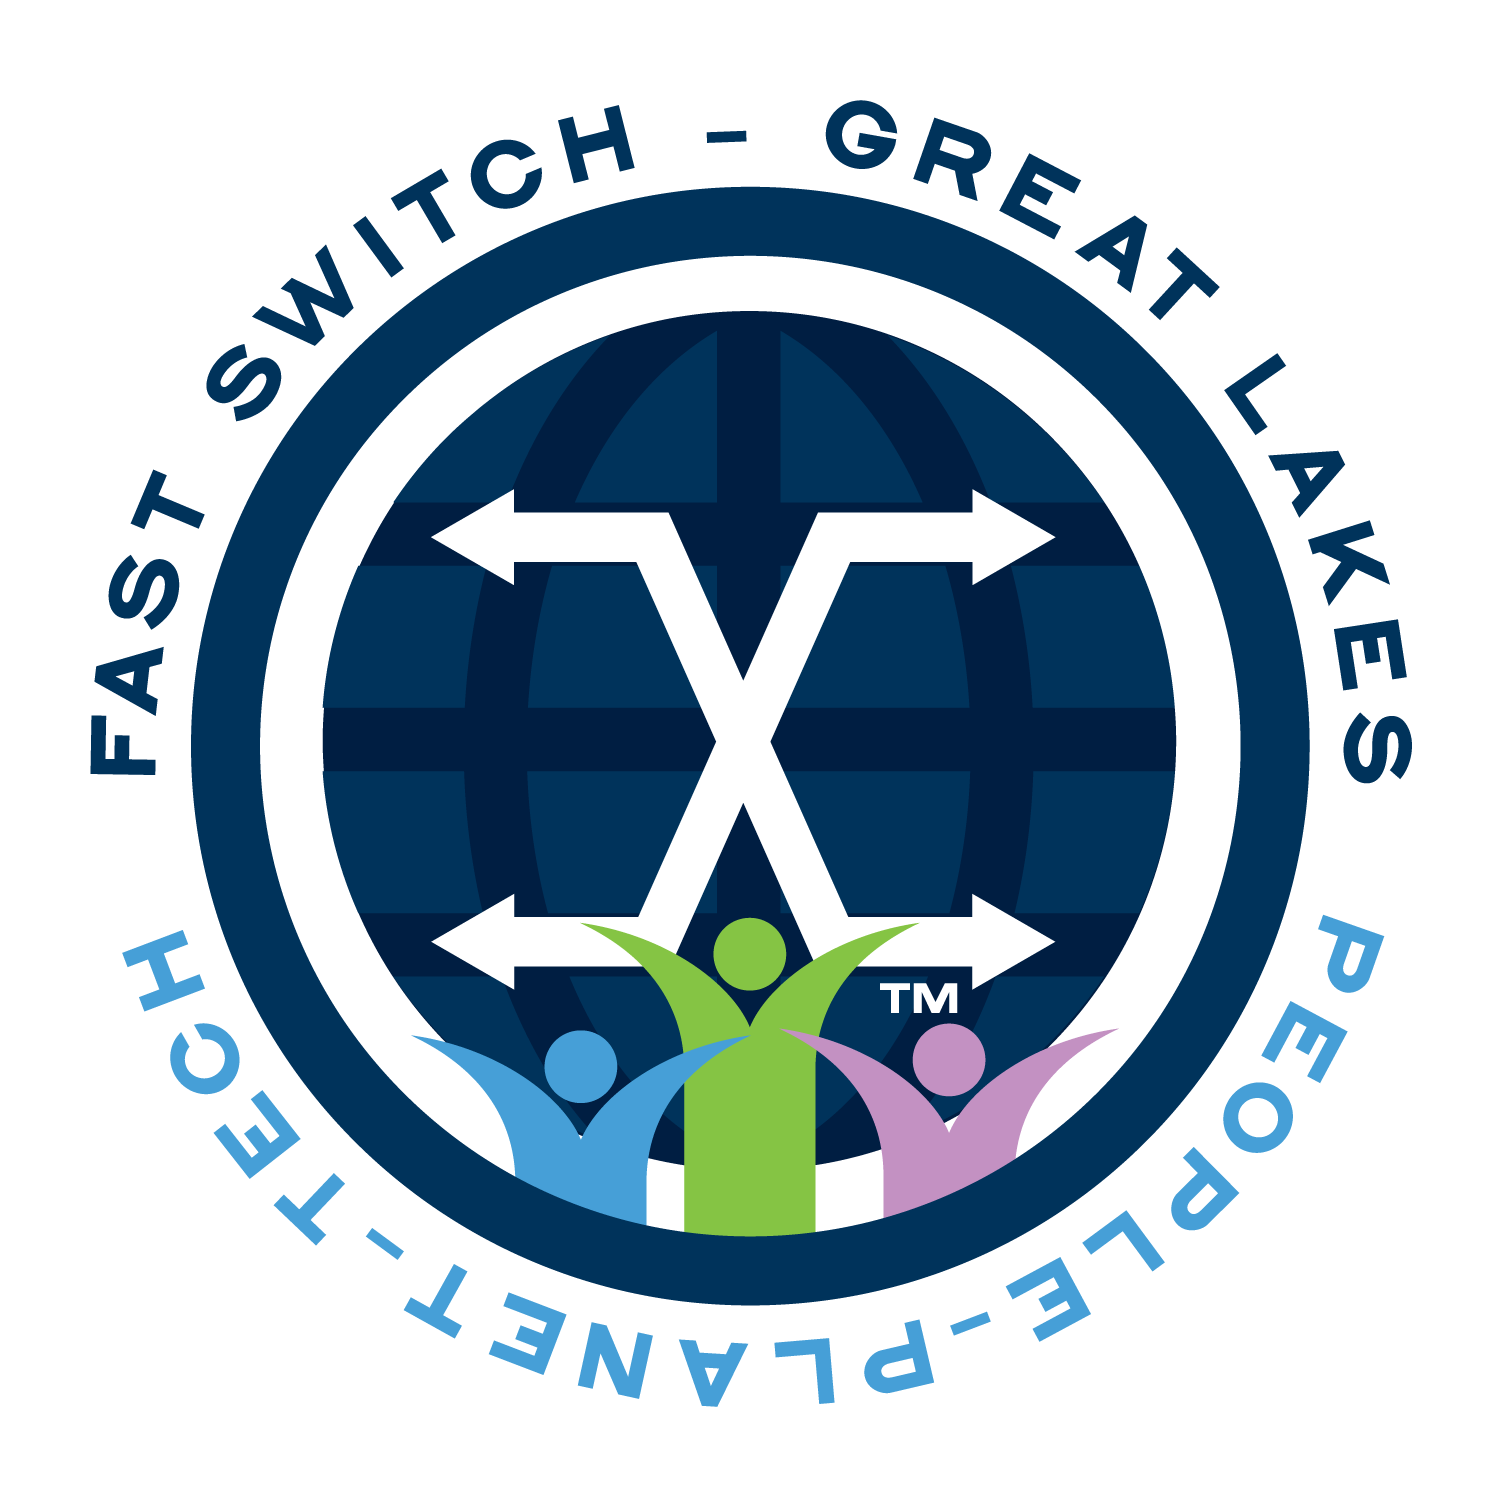 Program Management Consultant/Expert role from Fast Switch - Great Lakes in Allen Park, MI